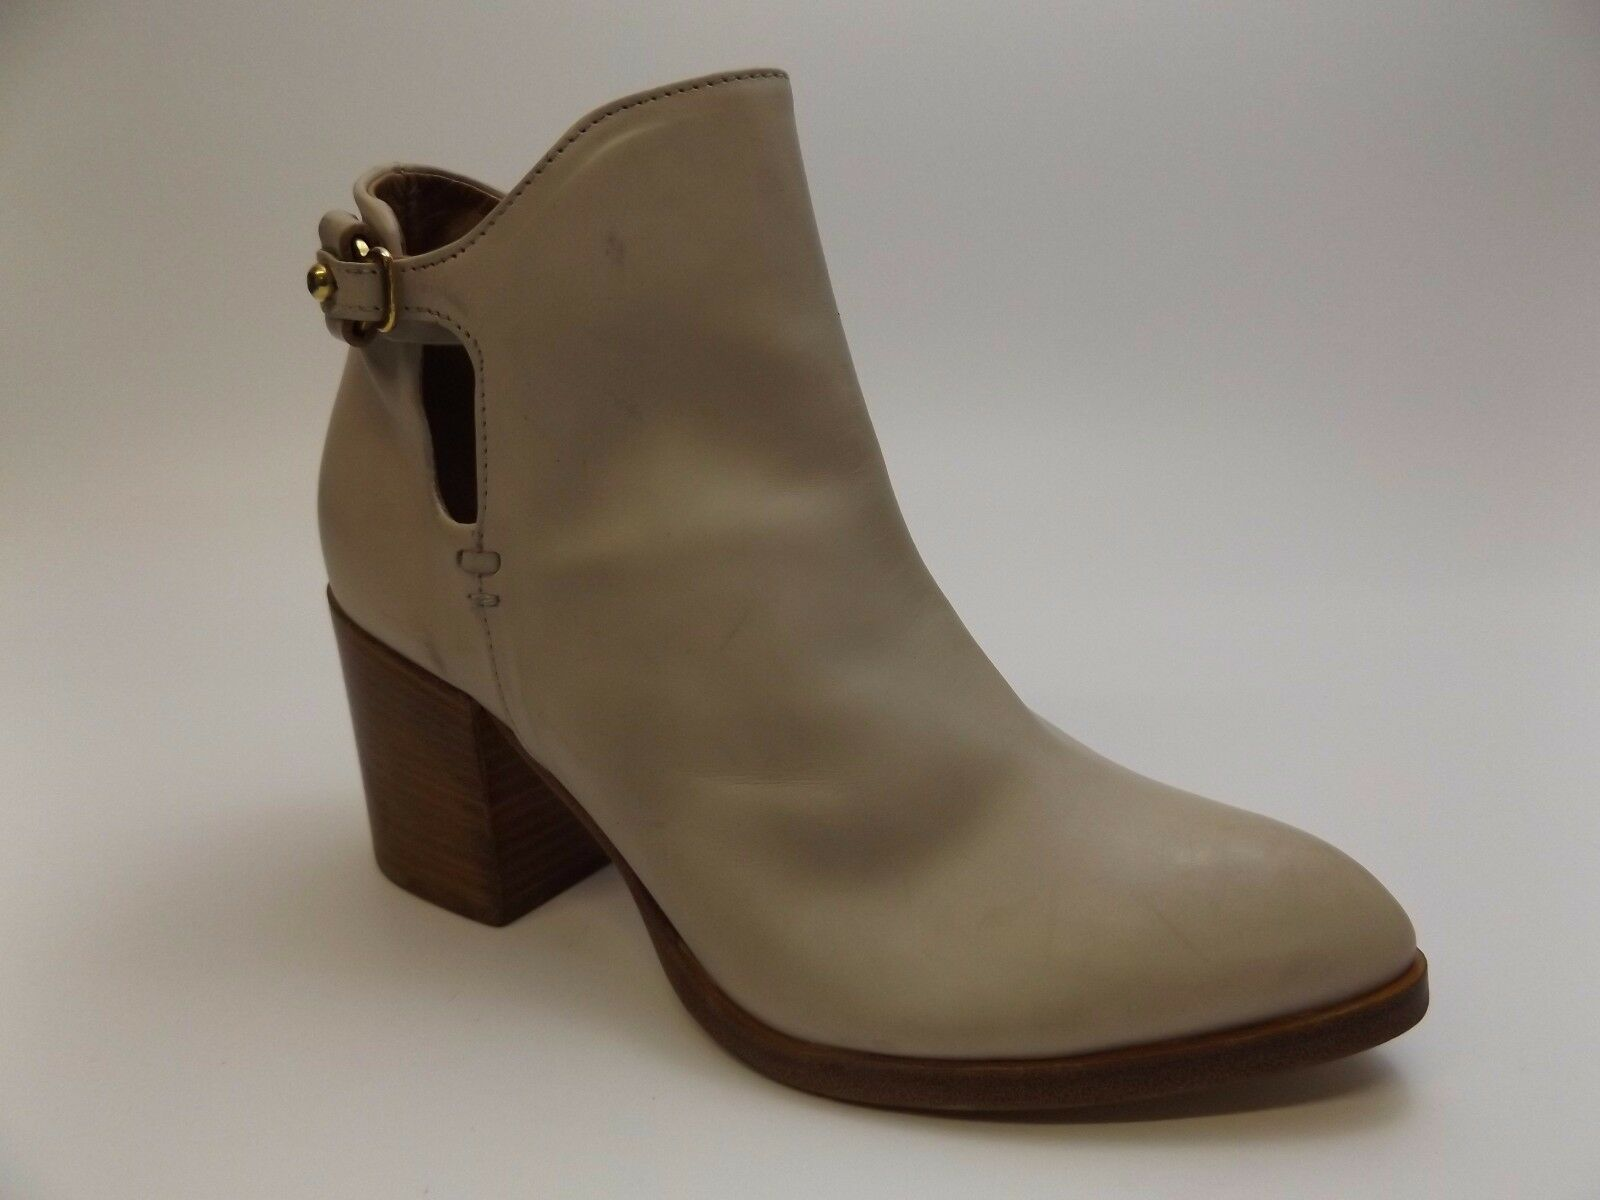 Alberto Fermani Women's BONE Leather Ankle Booties shoes Size 5.5 M DISPLAY 1748